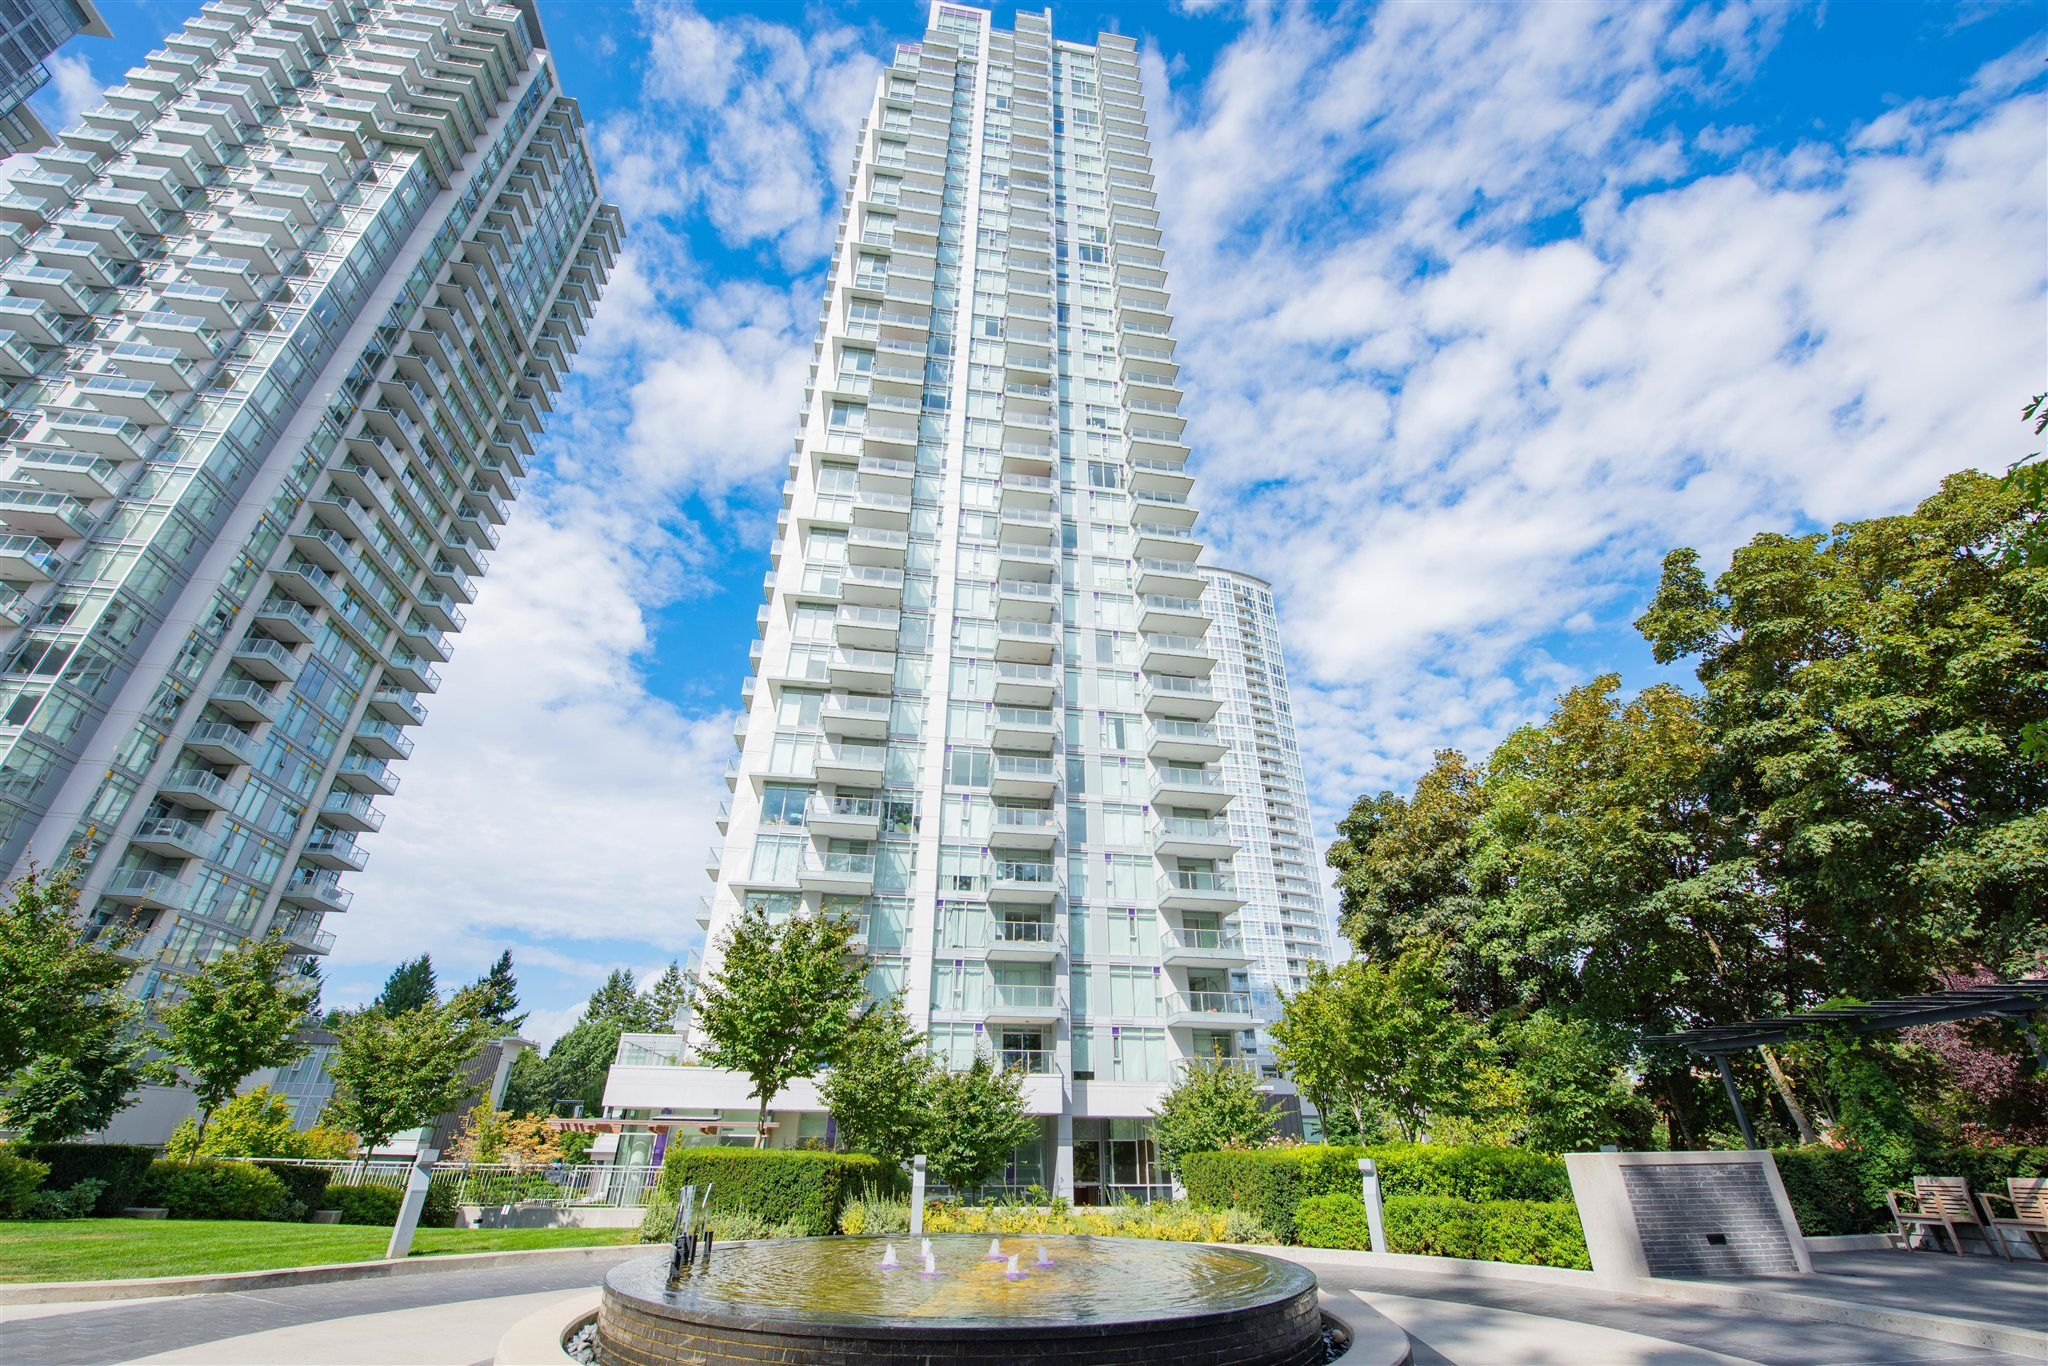 """Main Photo: 3106 6538 NELSON Avenue in Burnaby: Metrotown Condo for sale in """"MET 2"""" (Burnaby South)  : MLS®# R2608701"""